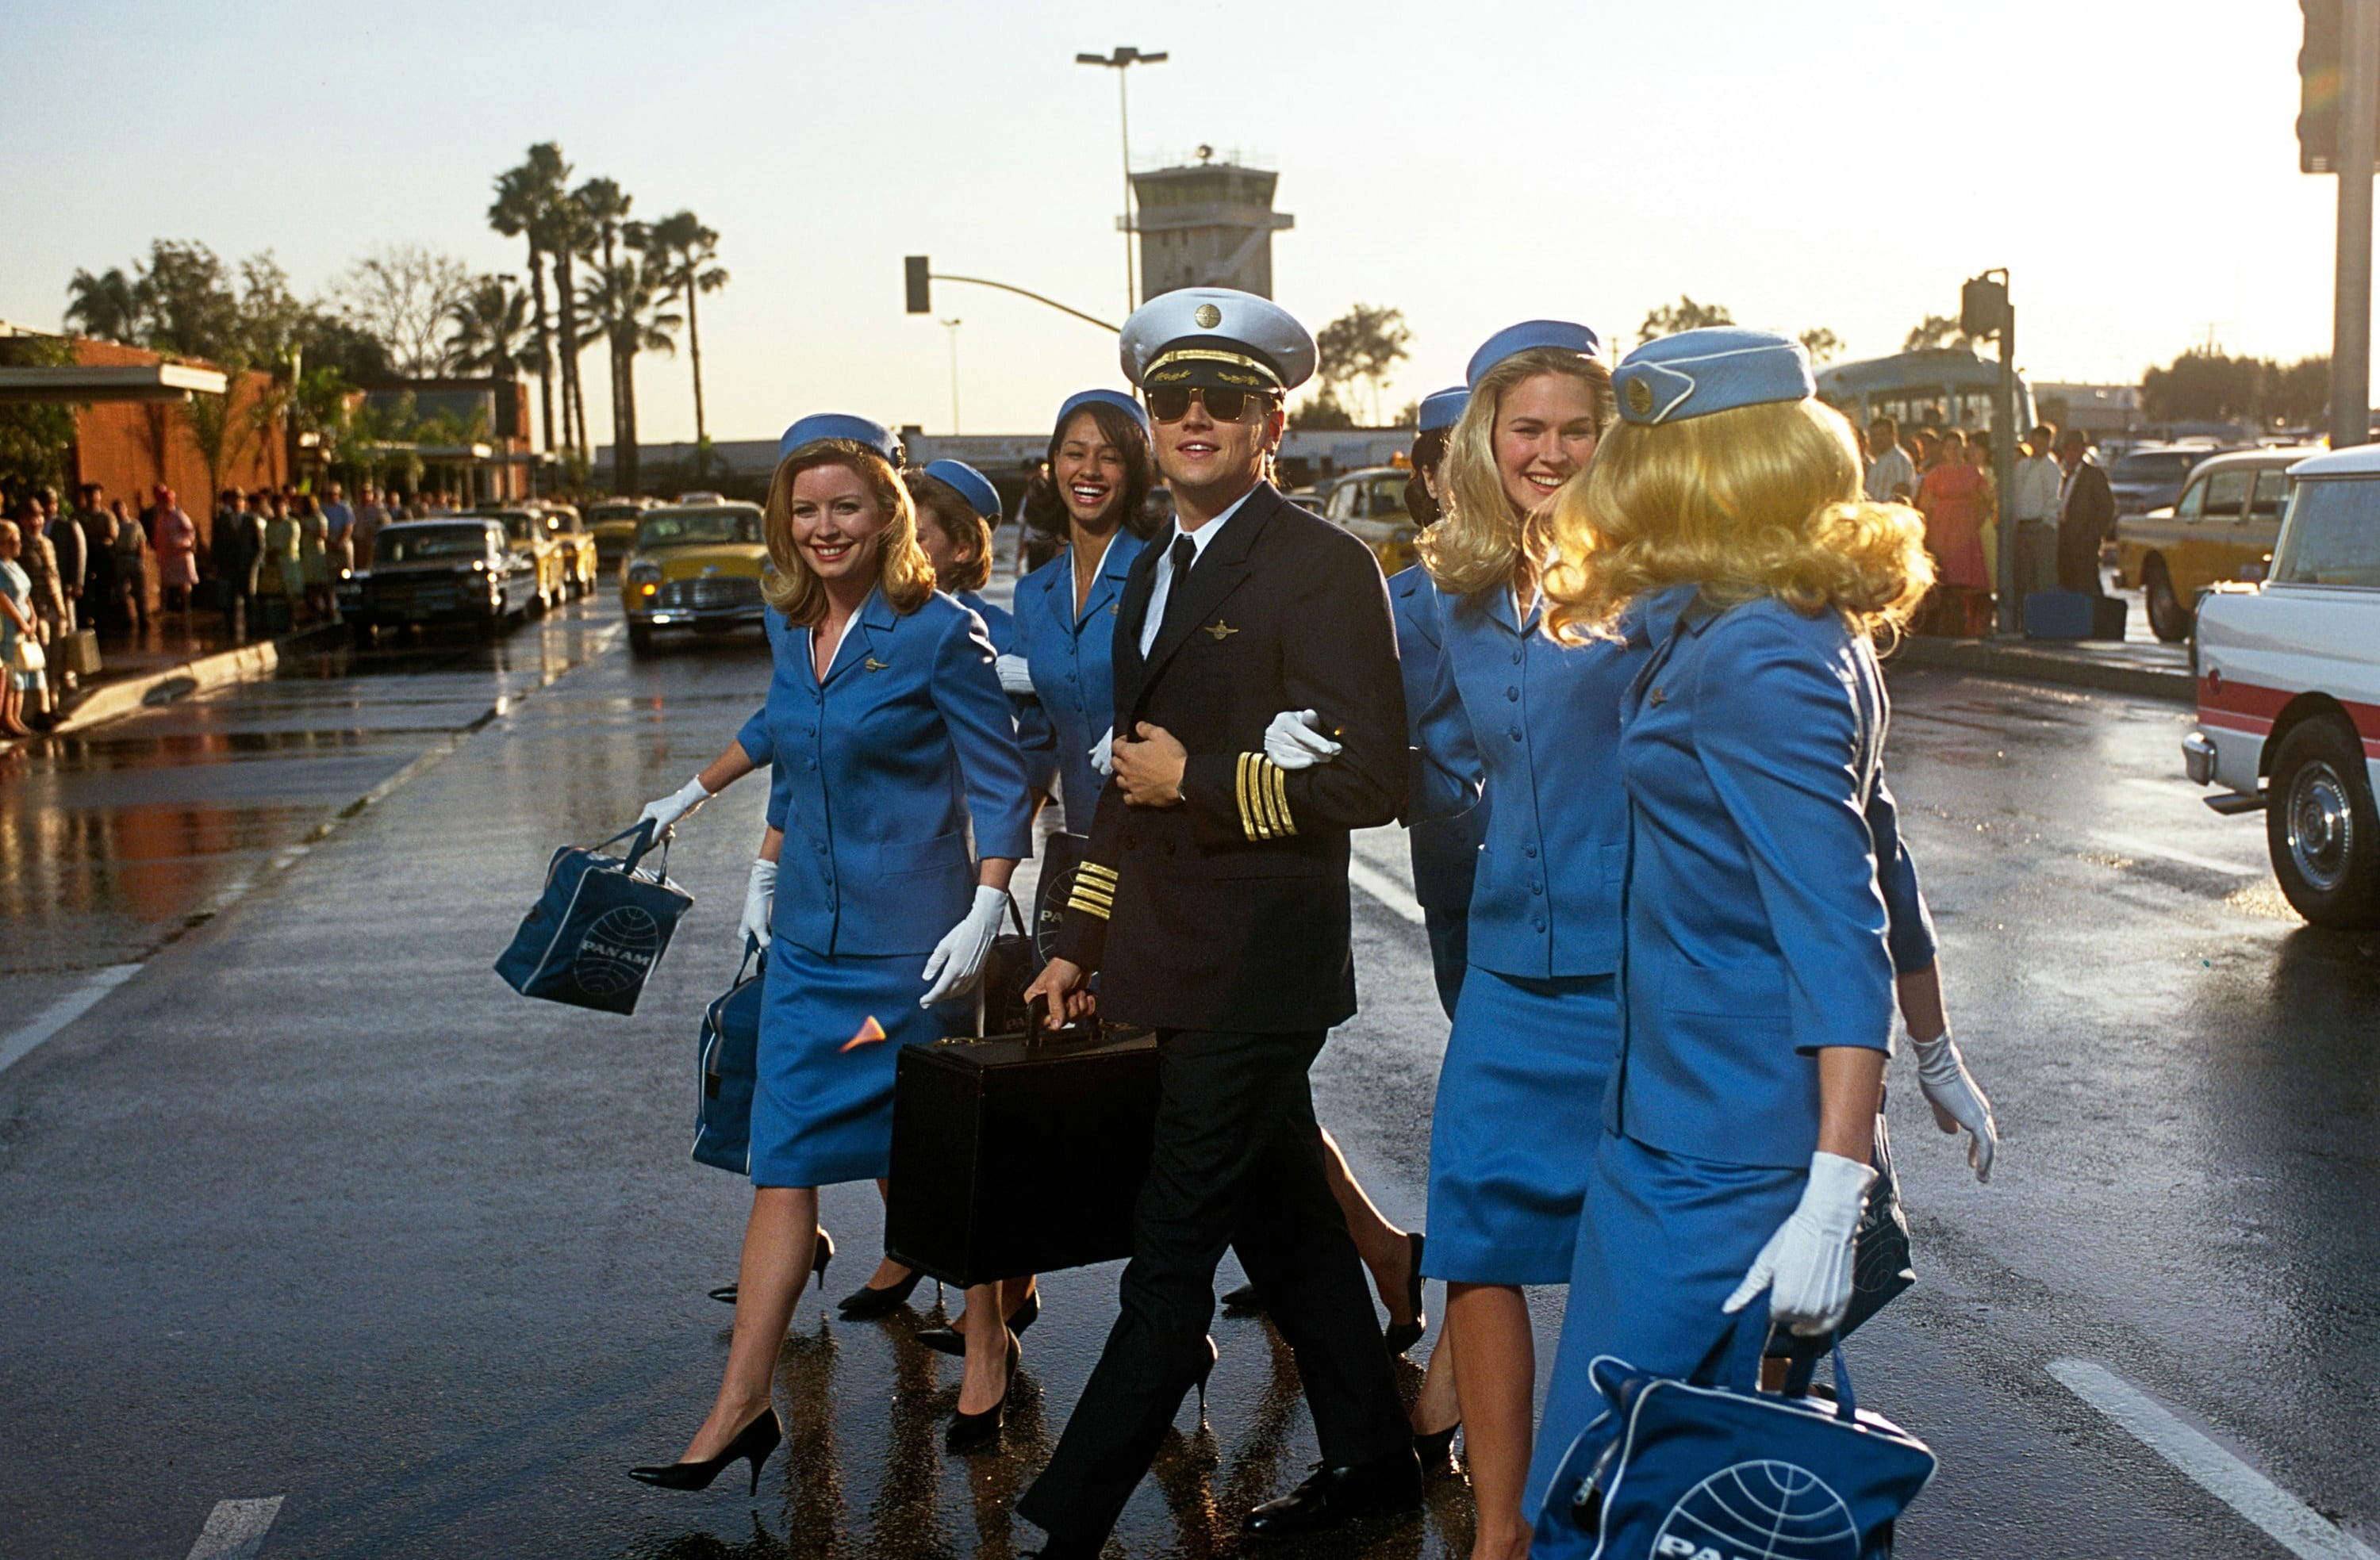 """Leonardo DiCaprio walking with a group of flight attendants in """"Catch Me if You Can"""""""